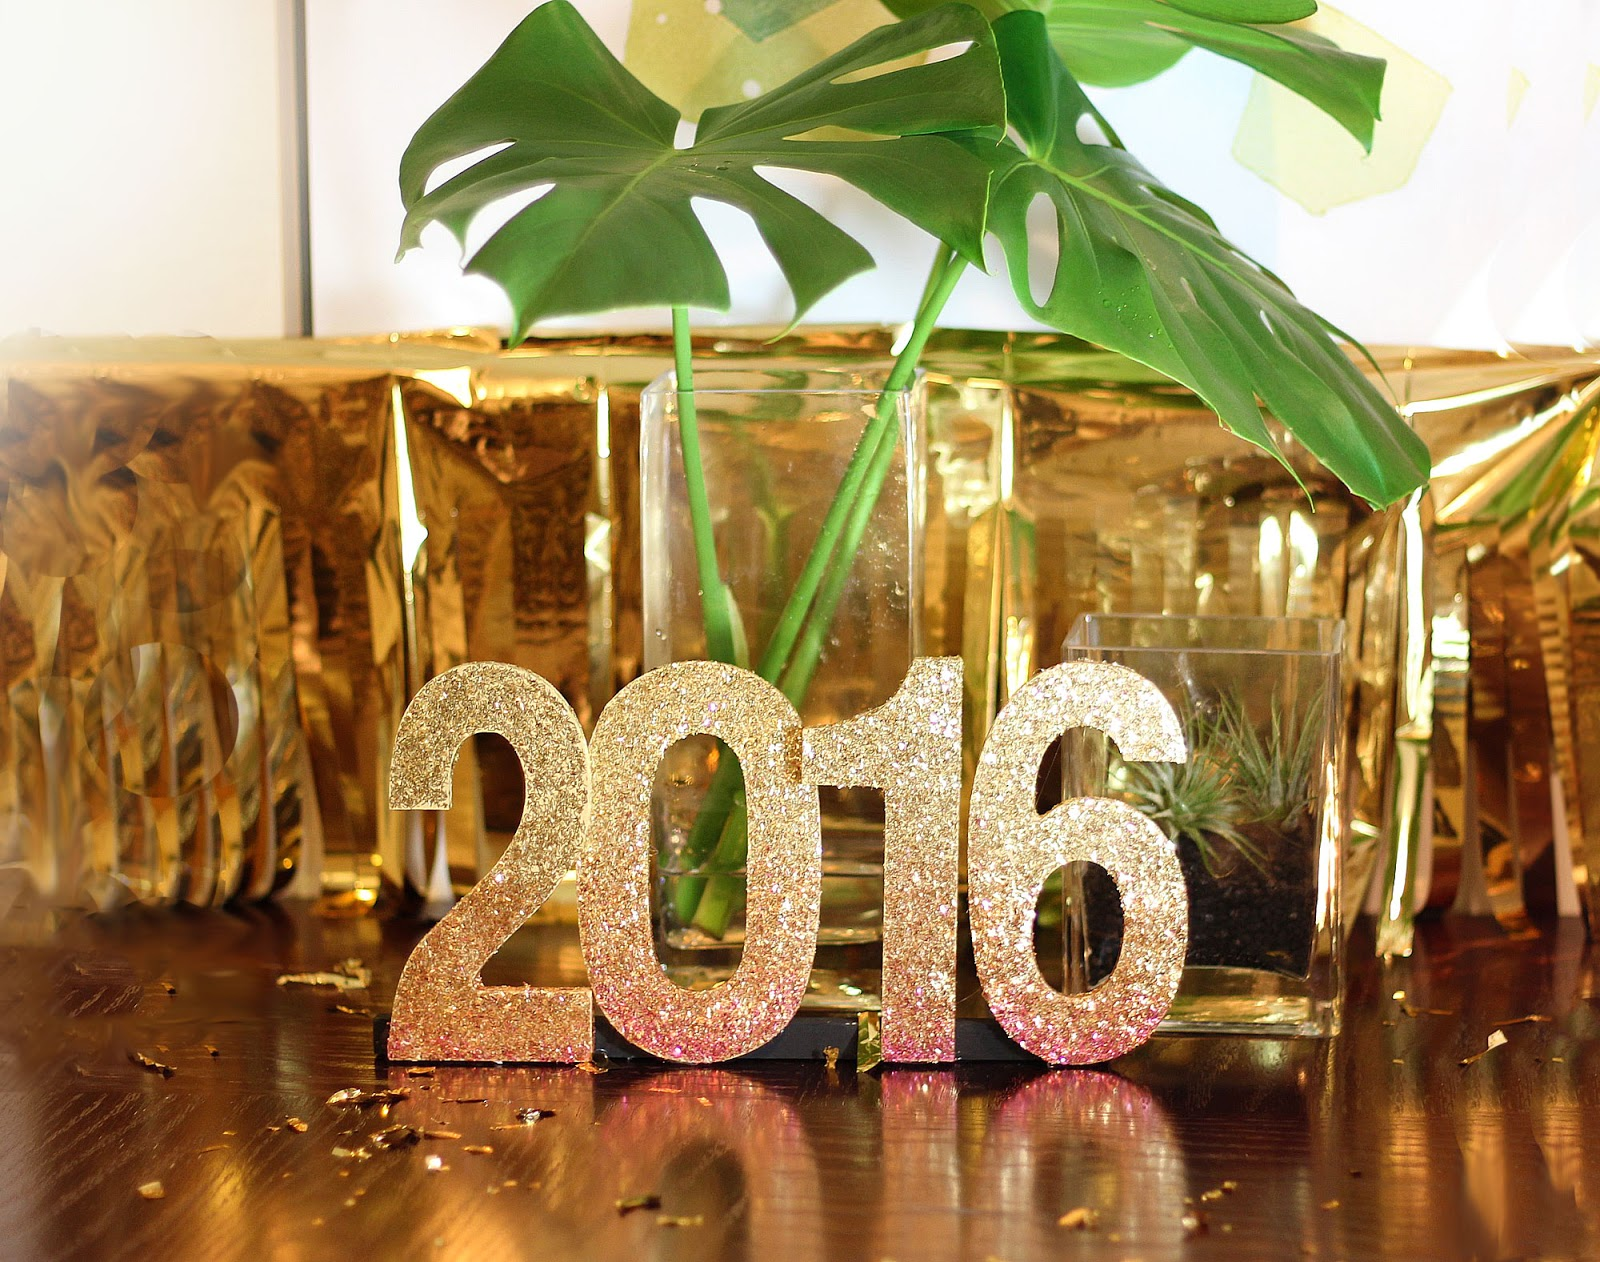 365 designs new year 39 s home decor accents for Home decor 365